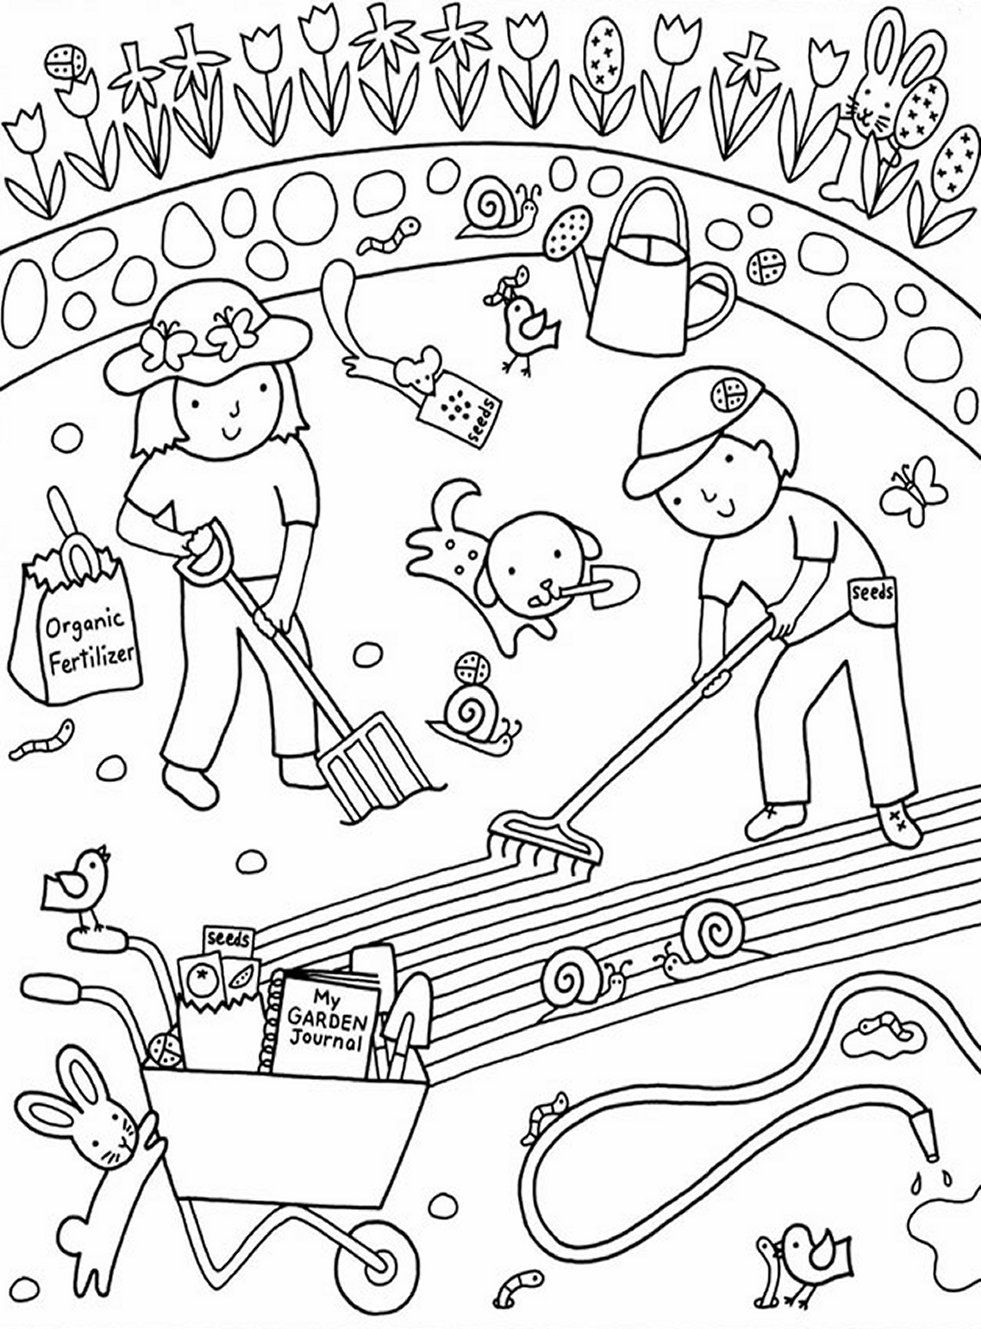 Garden pictures for kids to color - Kids Gardening Coloring Pages Free Colouring Pictures To Print